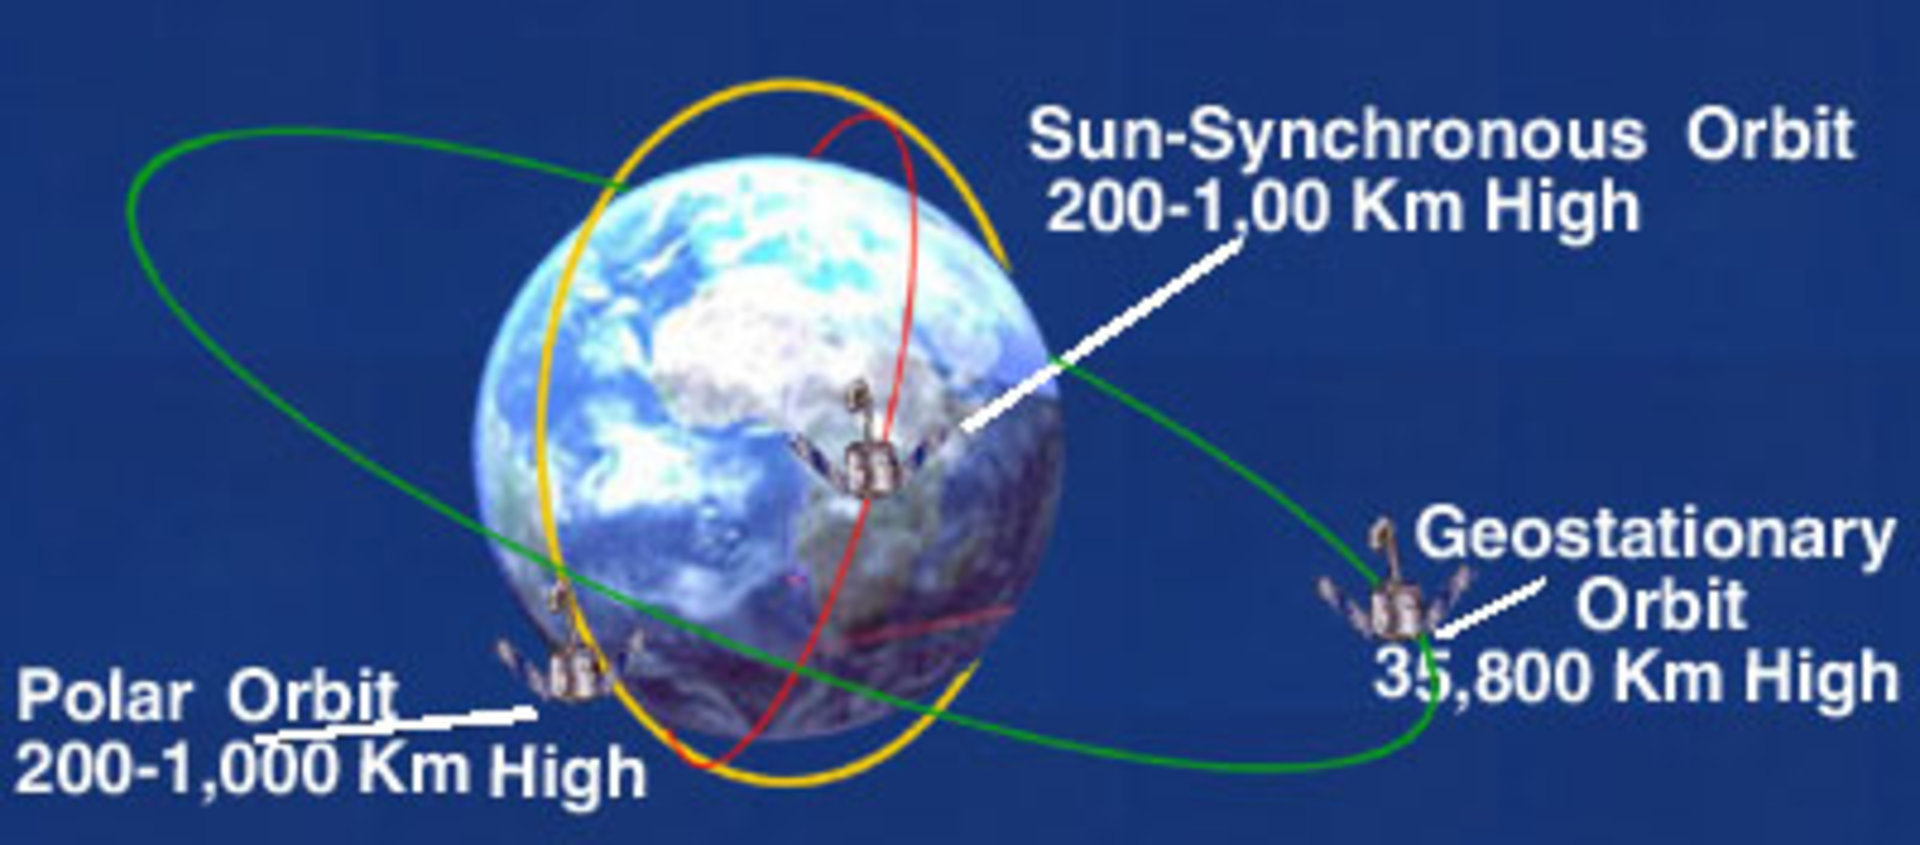 Types of orbits / Space Transportation / Our Activities